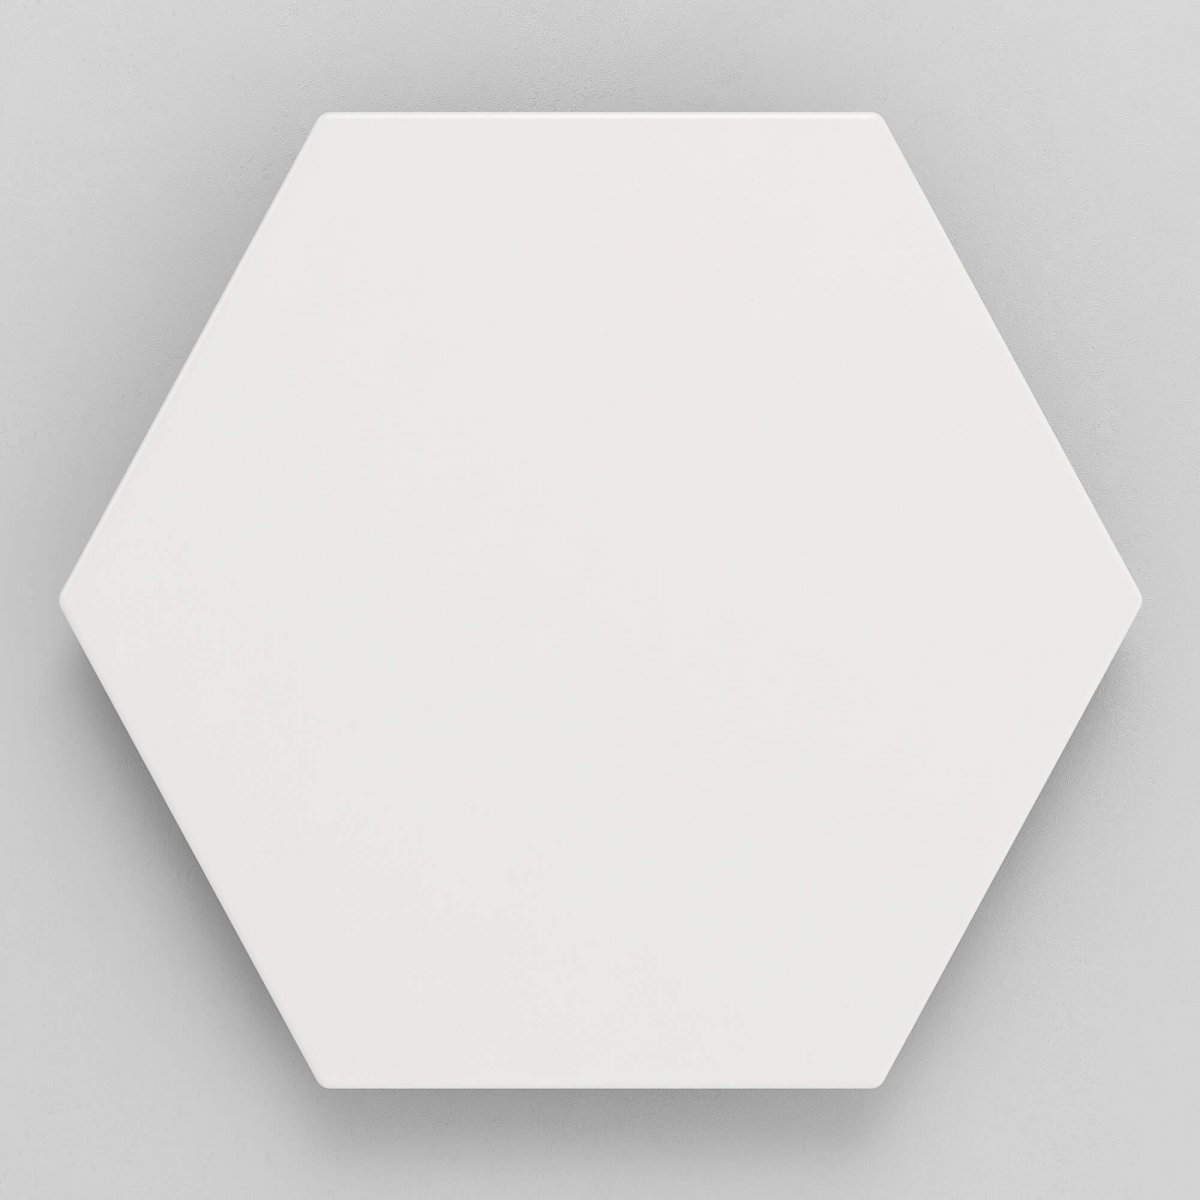 Geotiles Solid White 258x290mm_Stiles_Product_Image